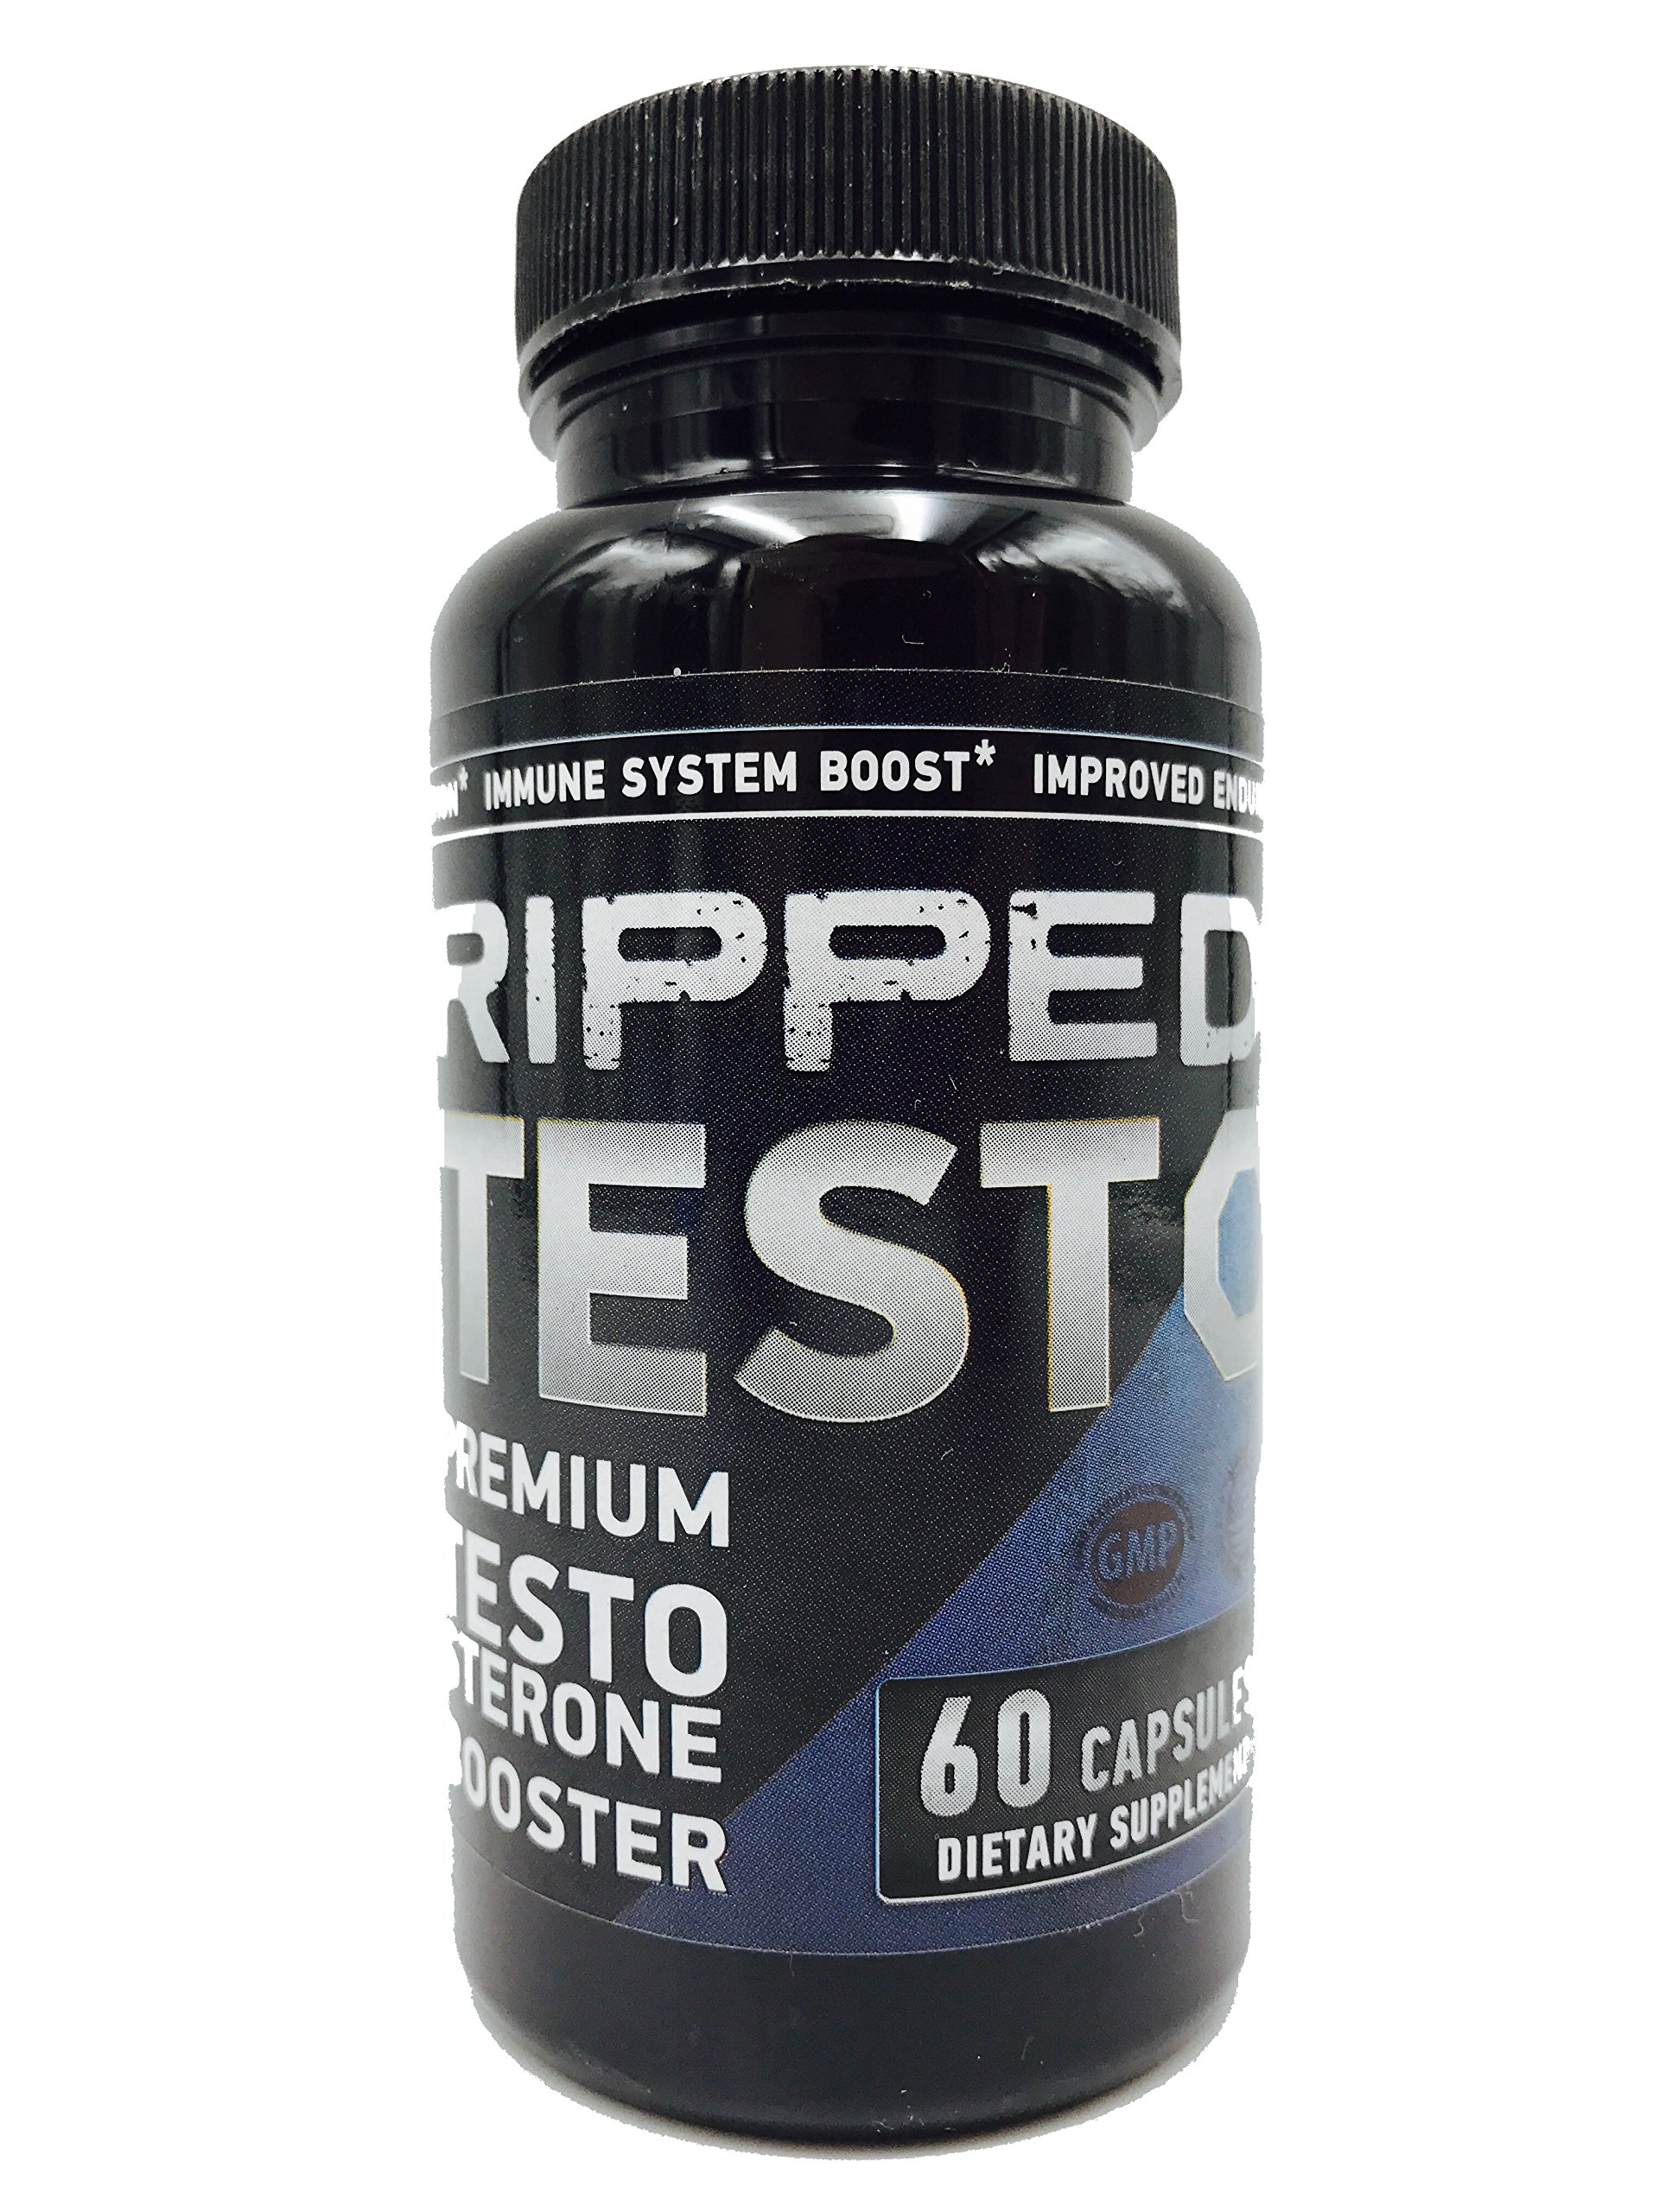 Ripped Testo- Perform at Your Peak - Supports Lean Muscle Growth 60 Capsules